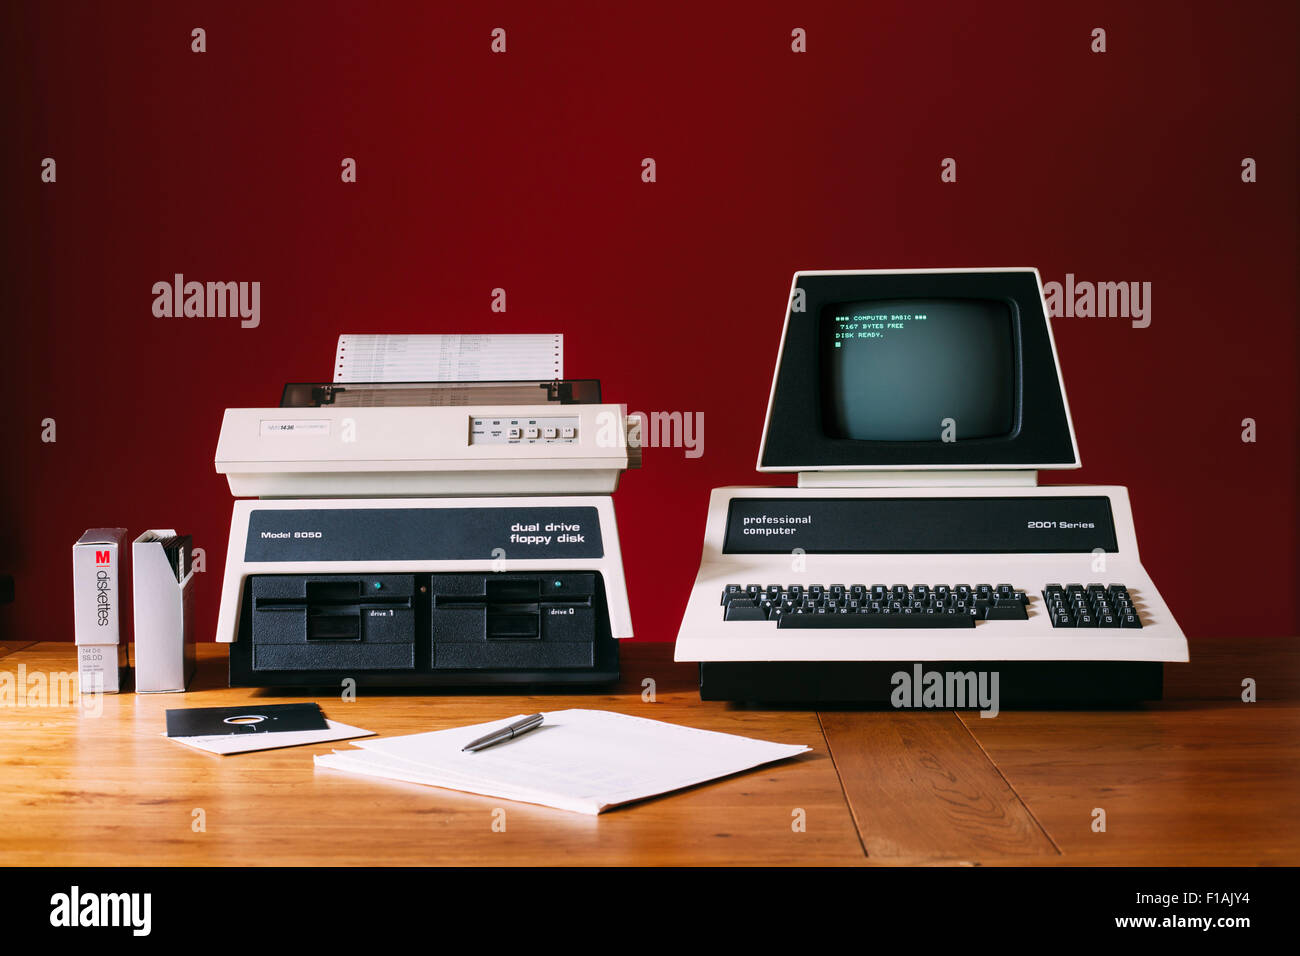 Vintage 1970's Personal Computer with Floppy Disk Drives and Dot Matrix Printer - Stock Image